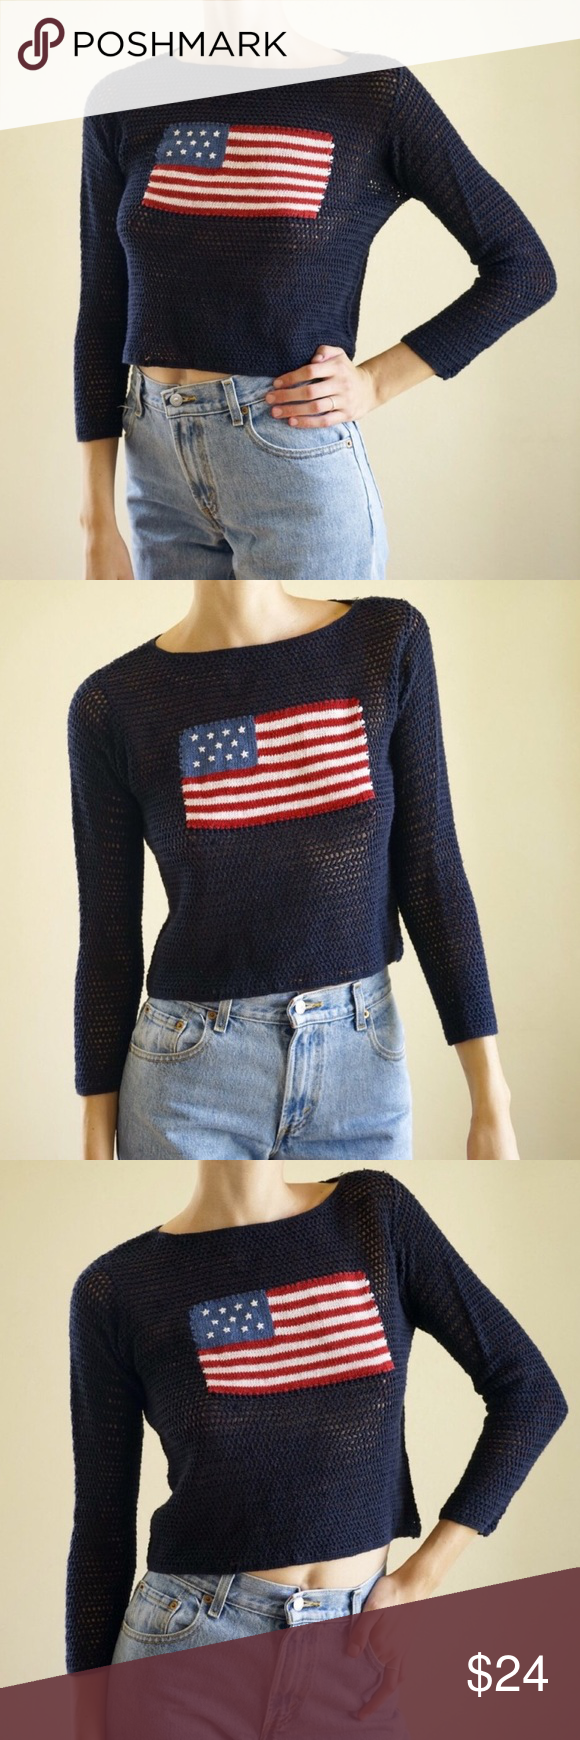 LAST CHANCE Vintage American flag cropped sweater | Flags, Vintage ...